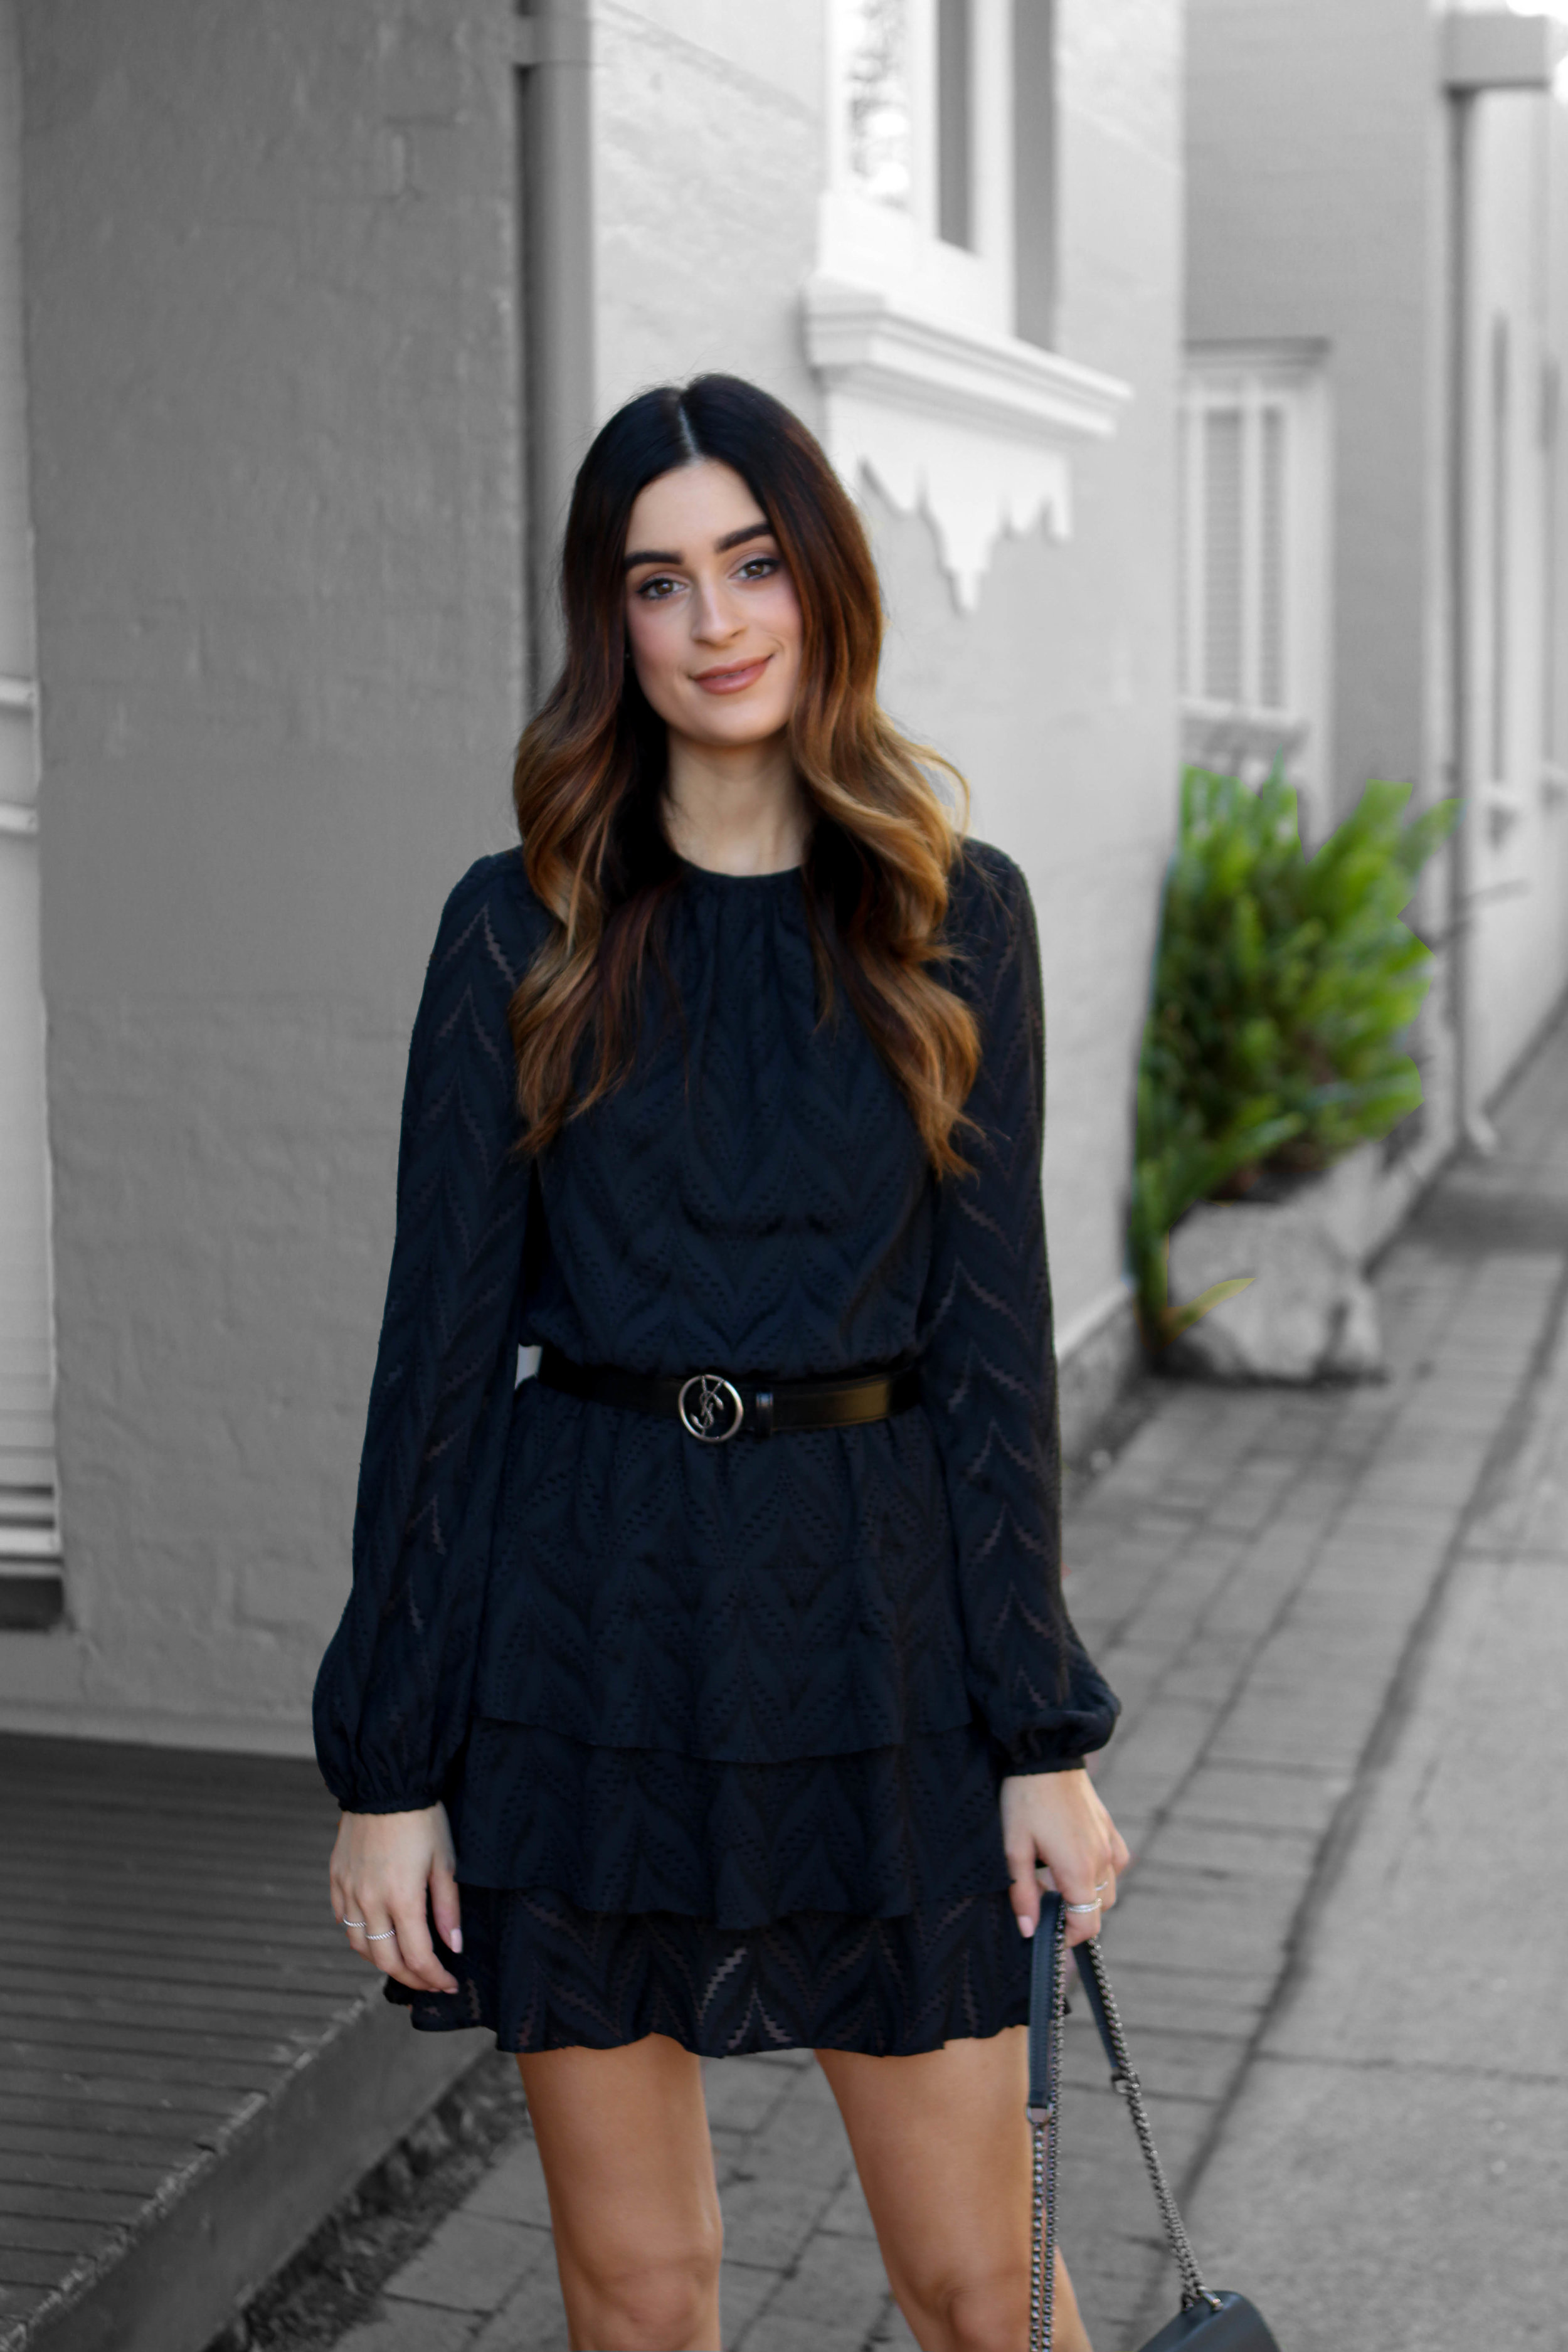 lace up boots and dress